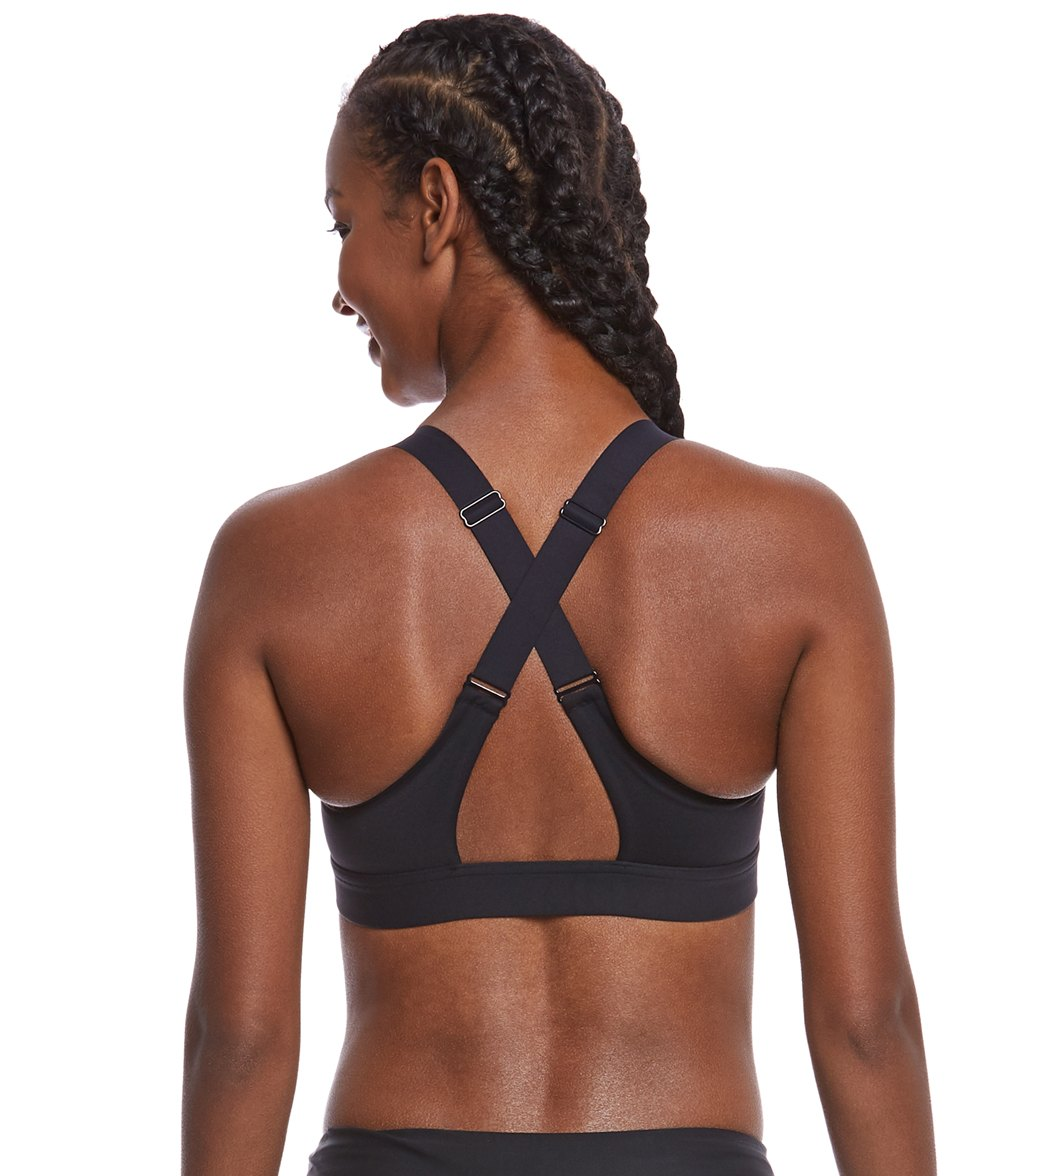 Under Armour Women s Eclipse High Zip Front Sports Bra at SwimOutlet.com -  Free Shipping 3f752bc5a